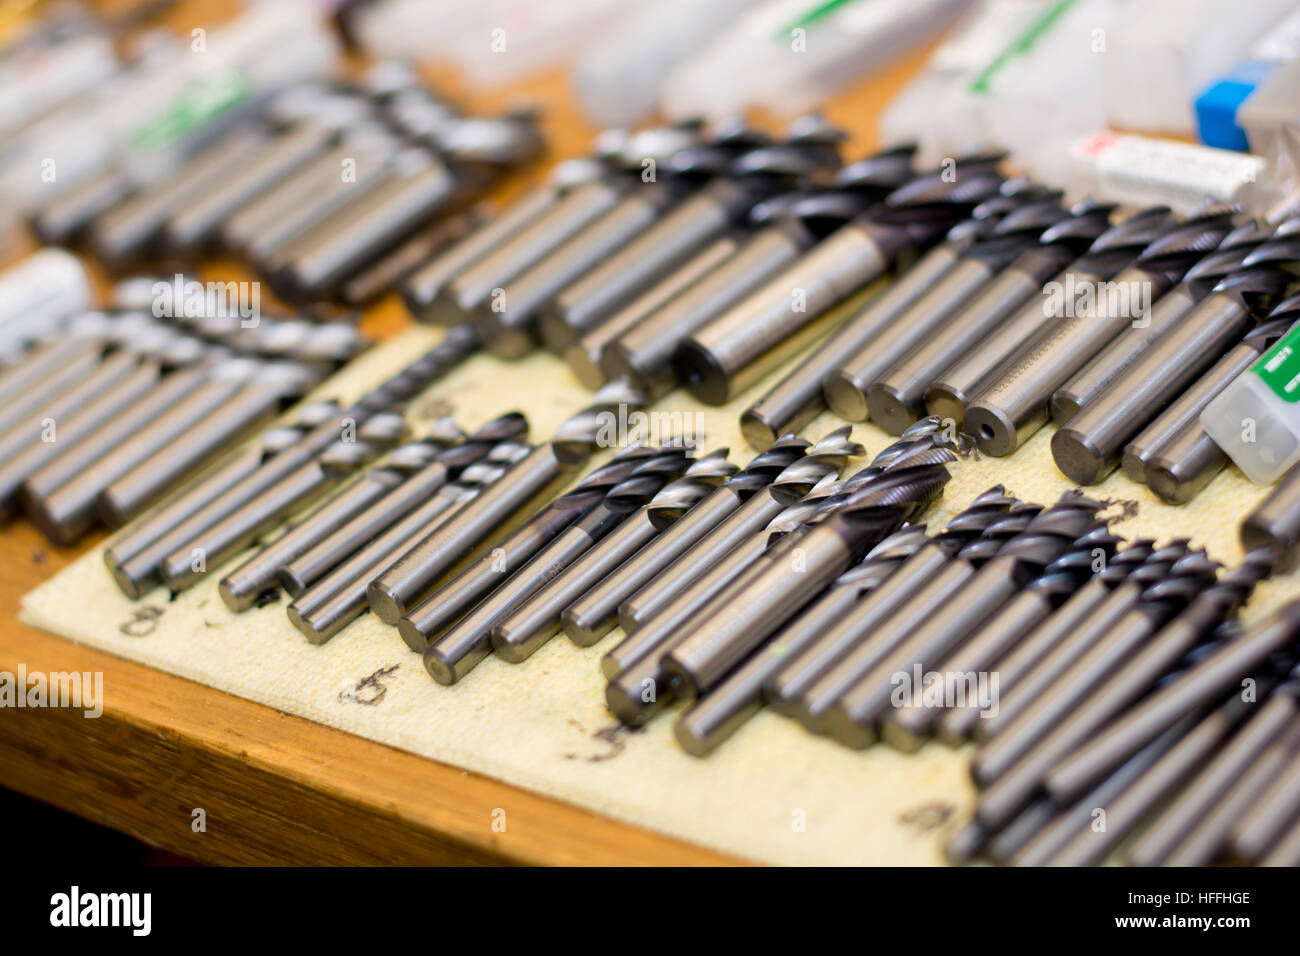 precision engineering tooling chucks on workshop table Stock Photo